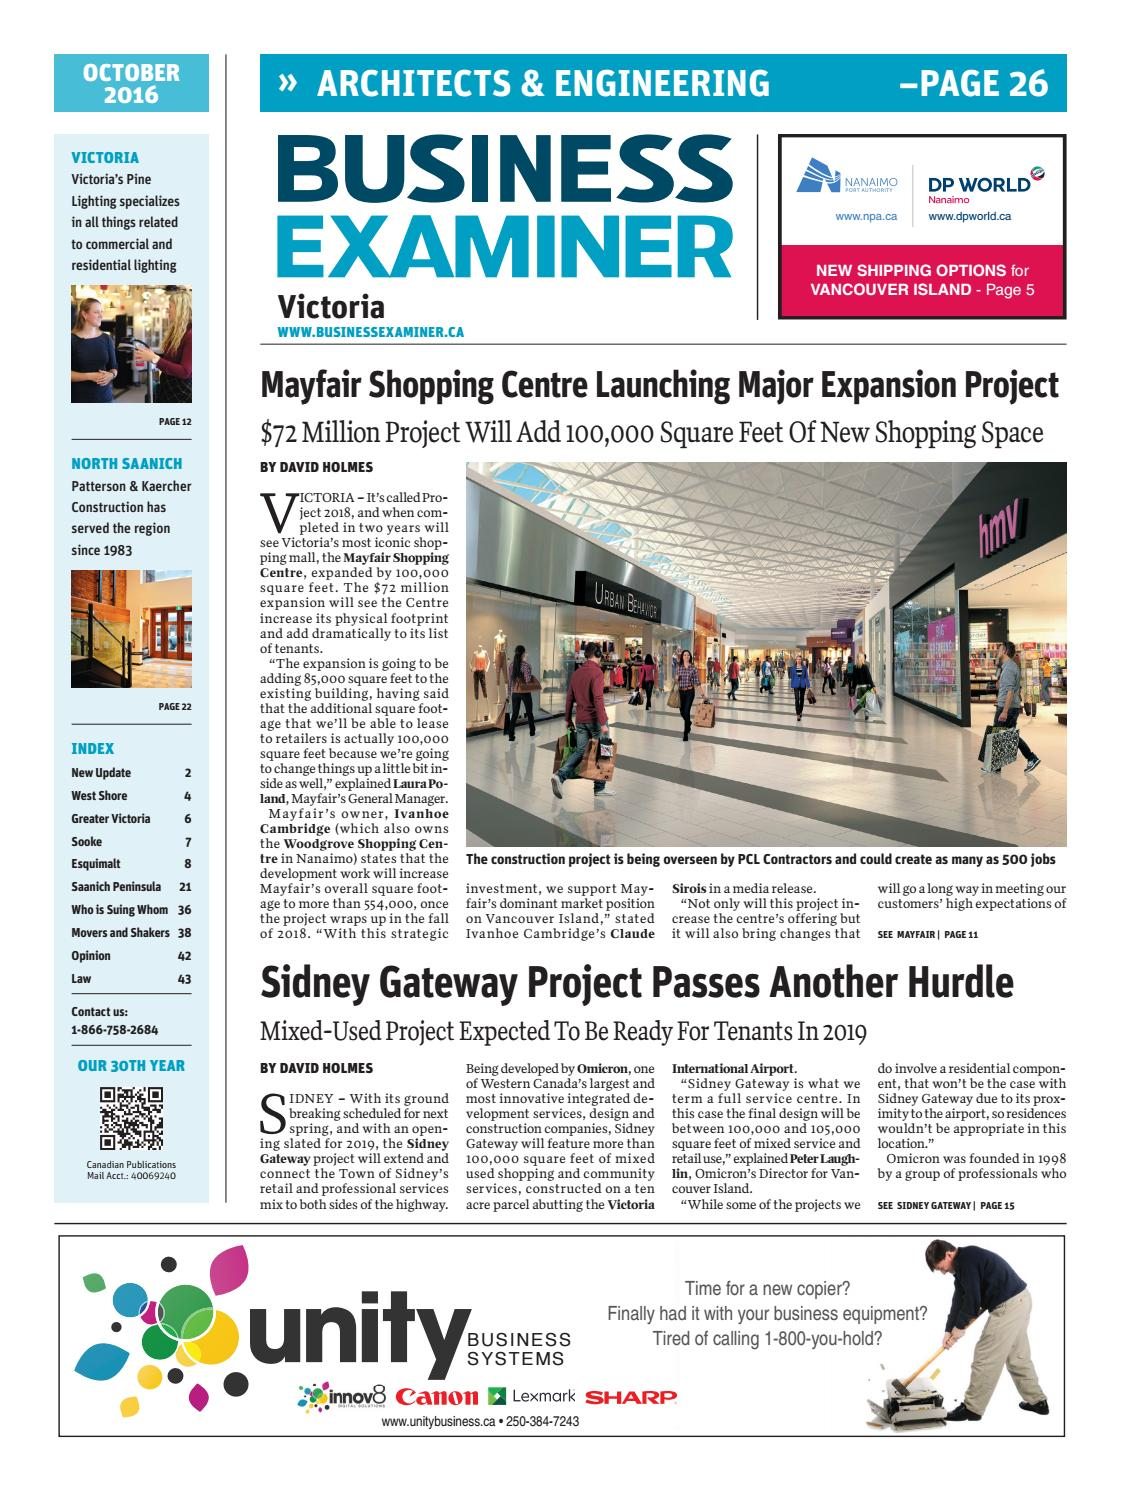 Business examiner victoria october 2016 by business examiner business examiner victoria october 2016 by business examiner media group issuu ccuart Image collections